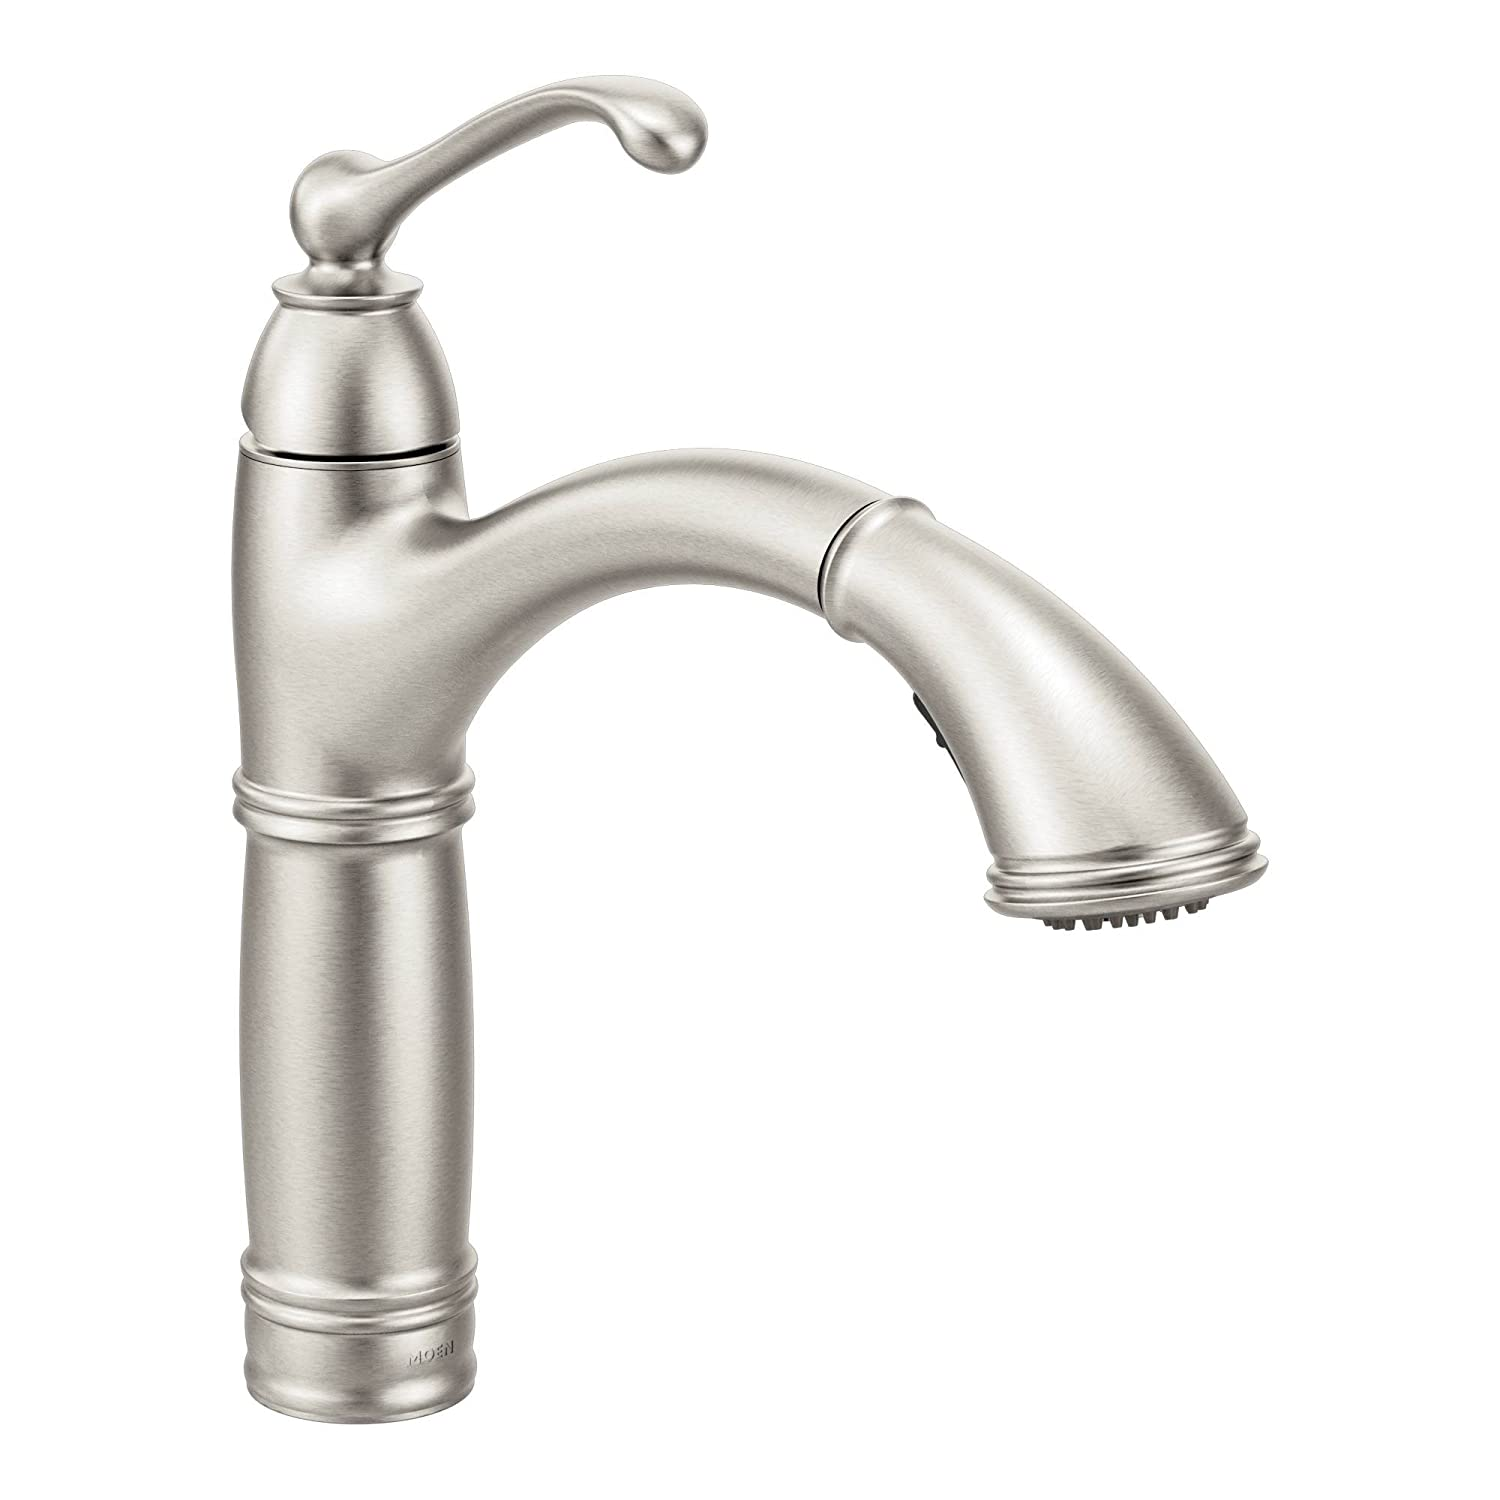 Moen 7295SRS Brantford e Handle High Arc Pullout Kitchen Faucet